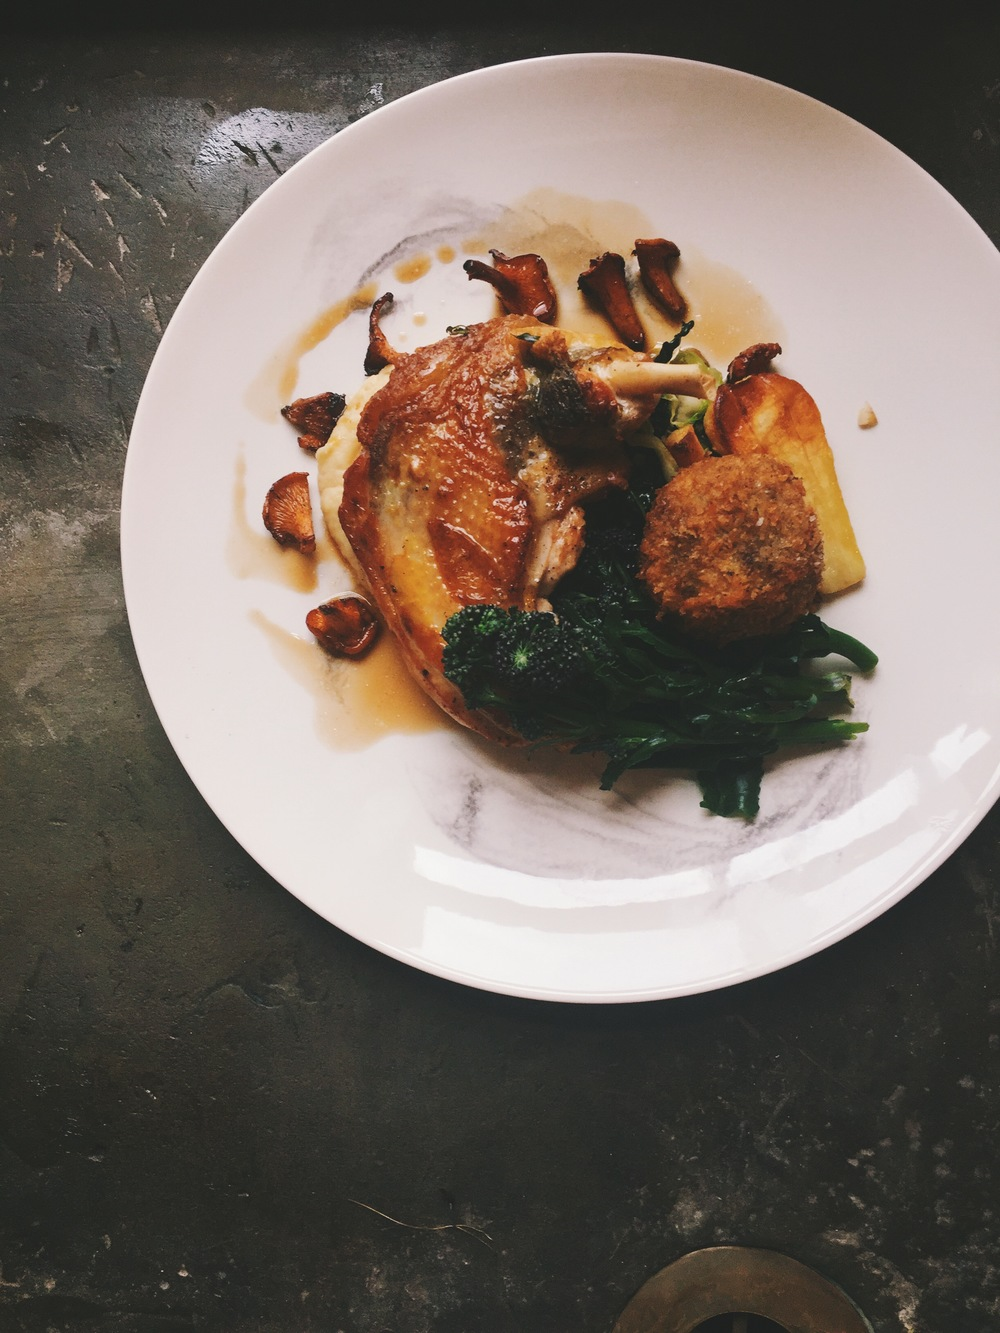 HillFoodCo_Pan fried Guinea fowl, braised leg croquette, truffled parsnip purée, purple sprouting broccoli, girolles,  Guinea fowl reduction.jpg